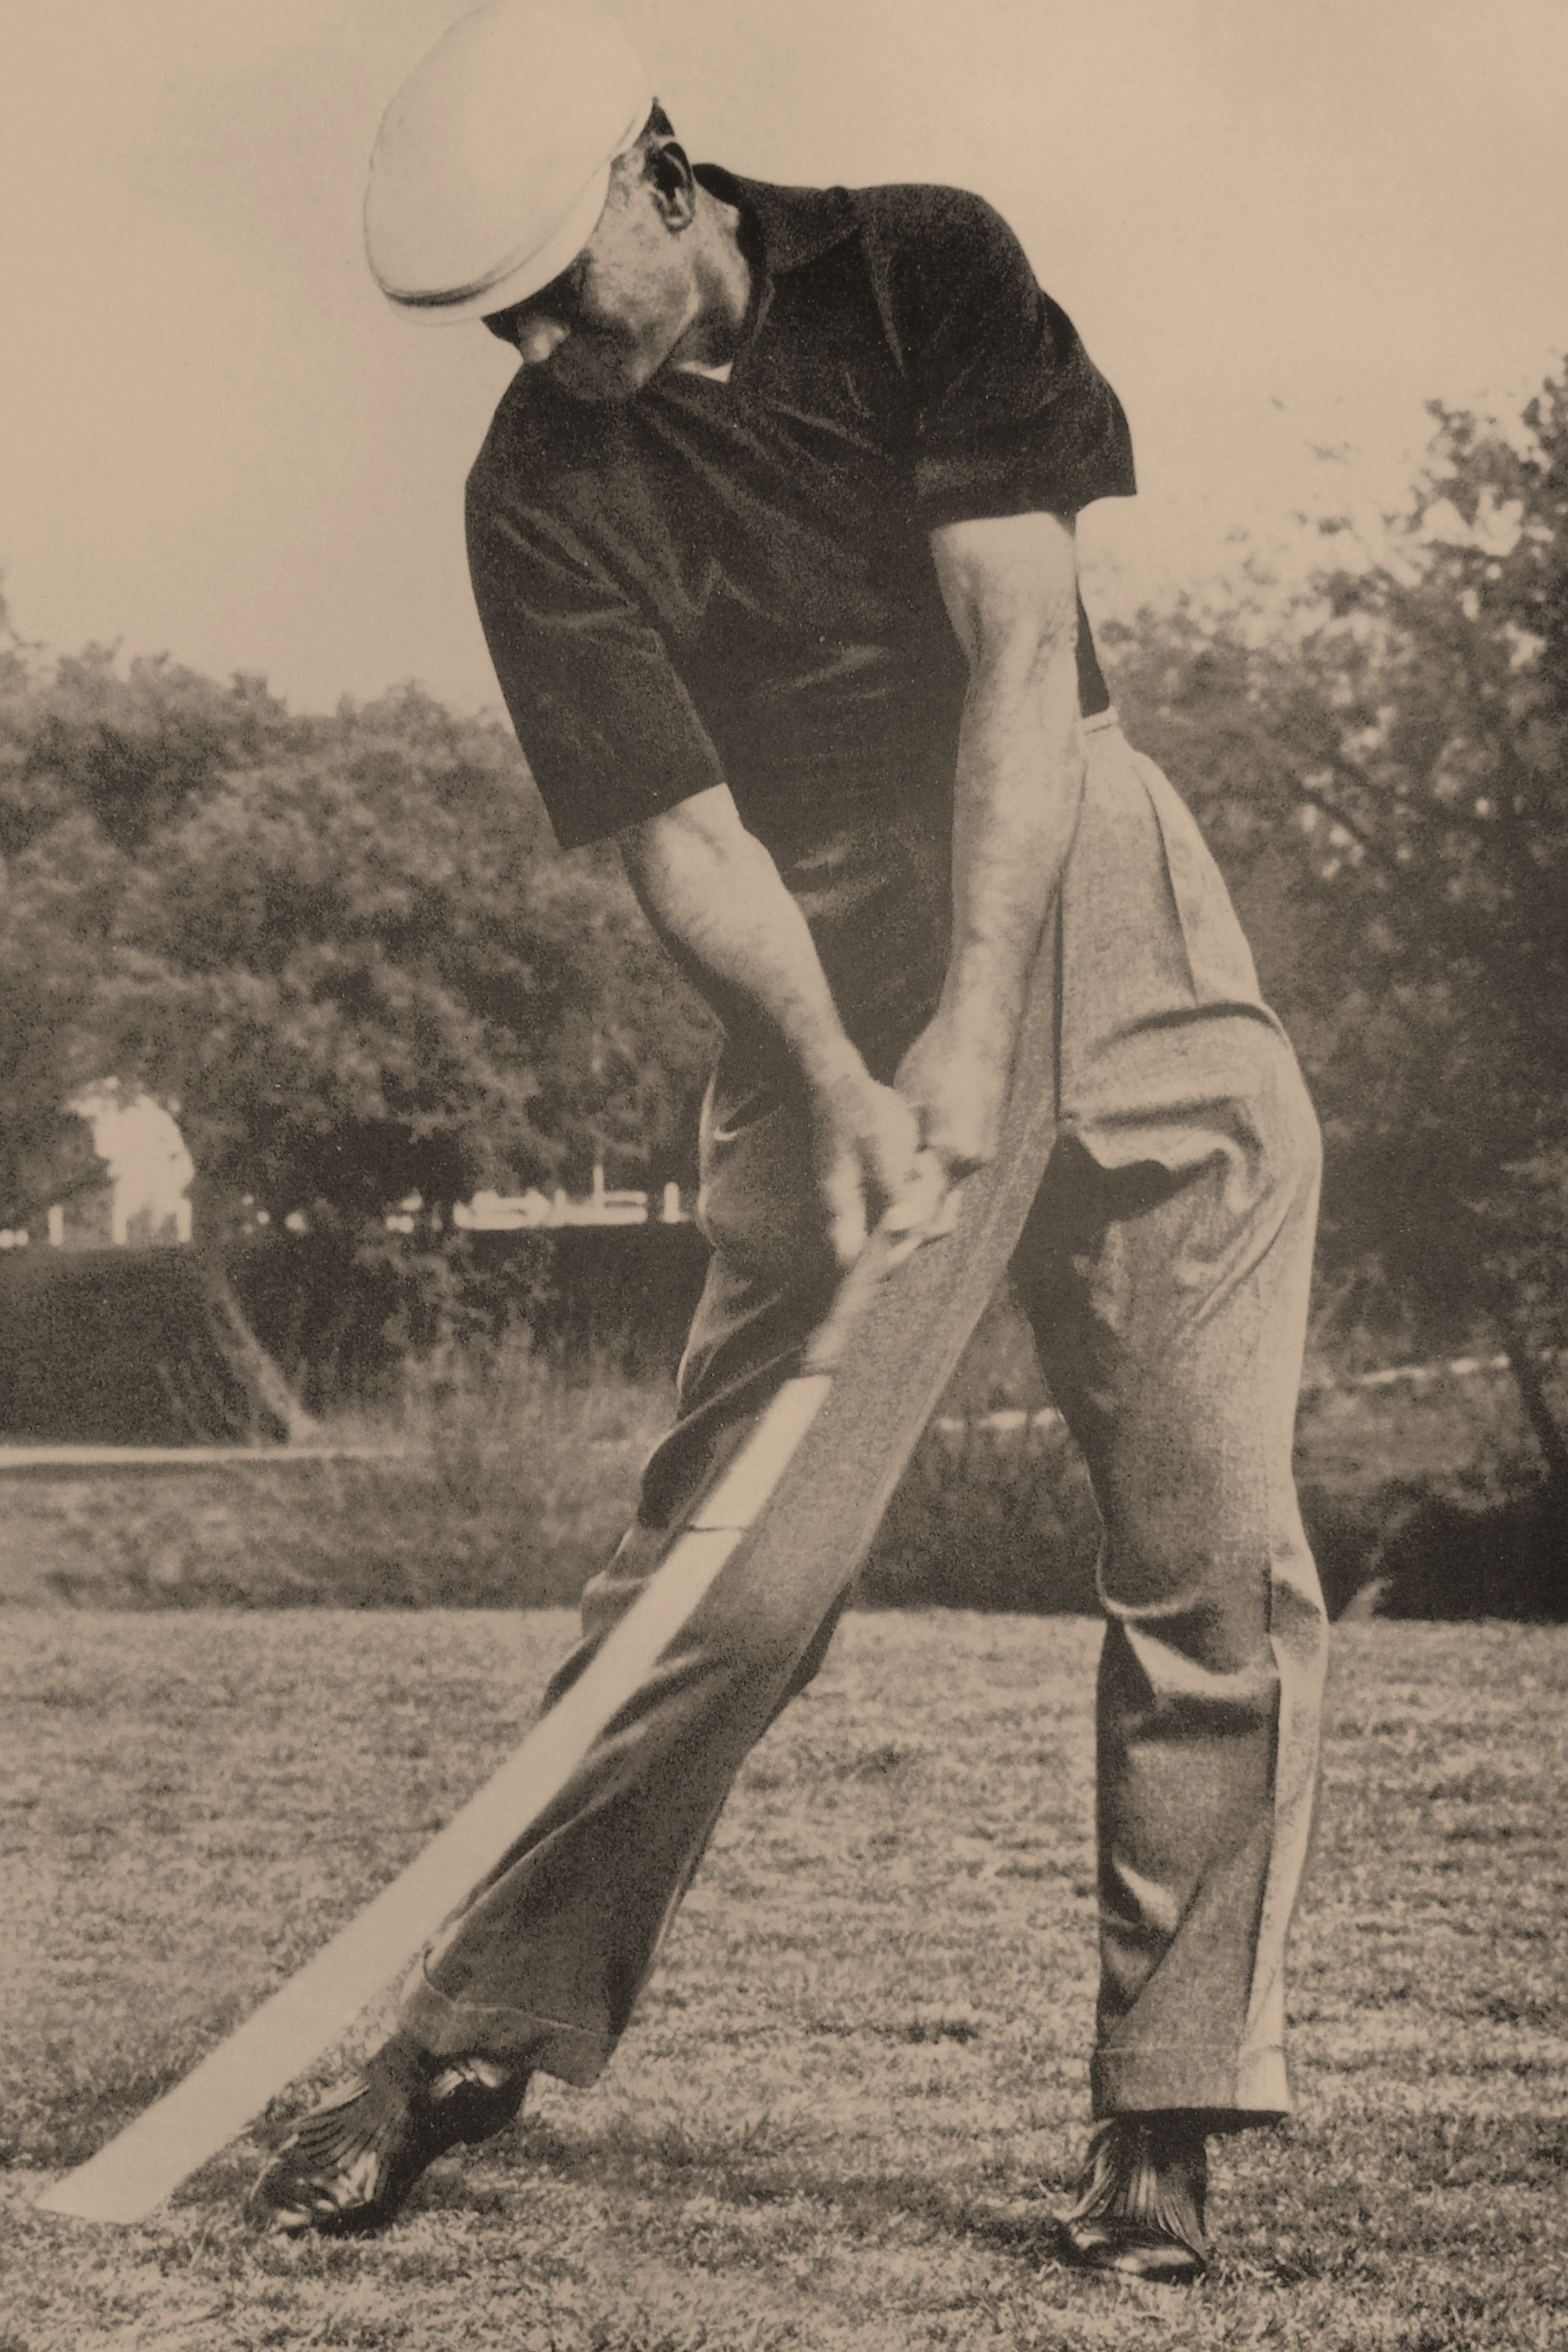 Now That is a Forward Leaning Shaft Ben Hogan